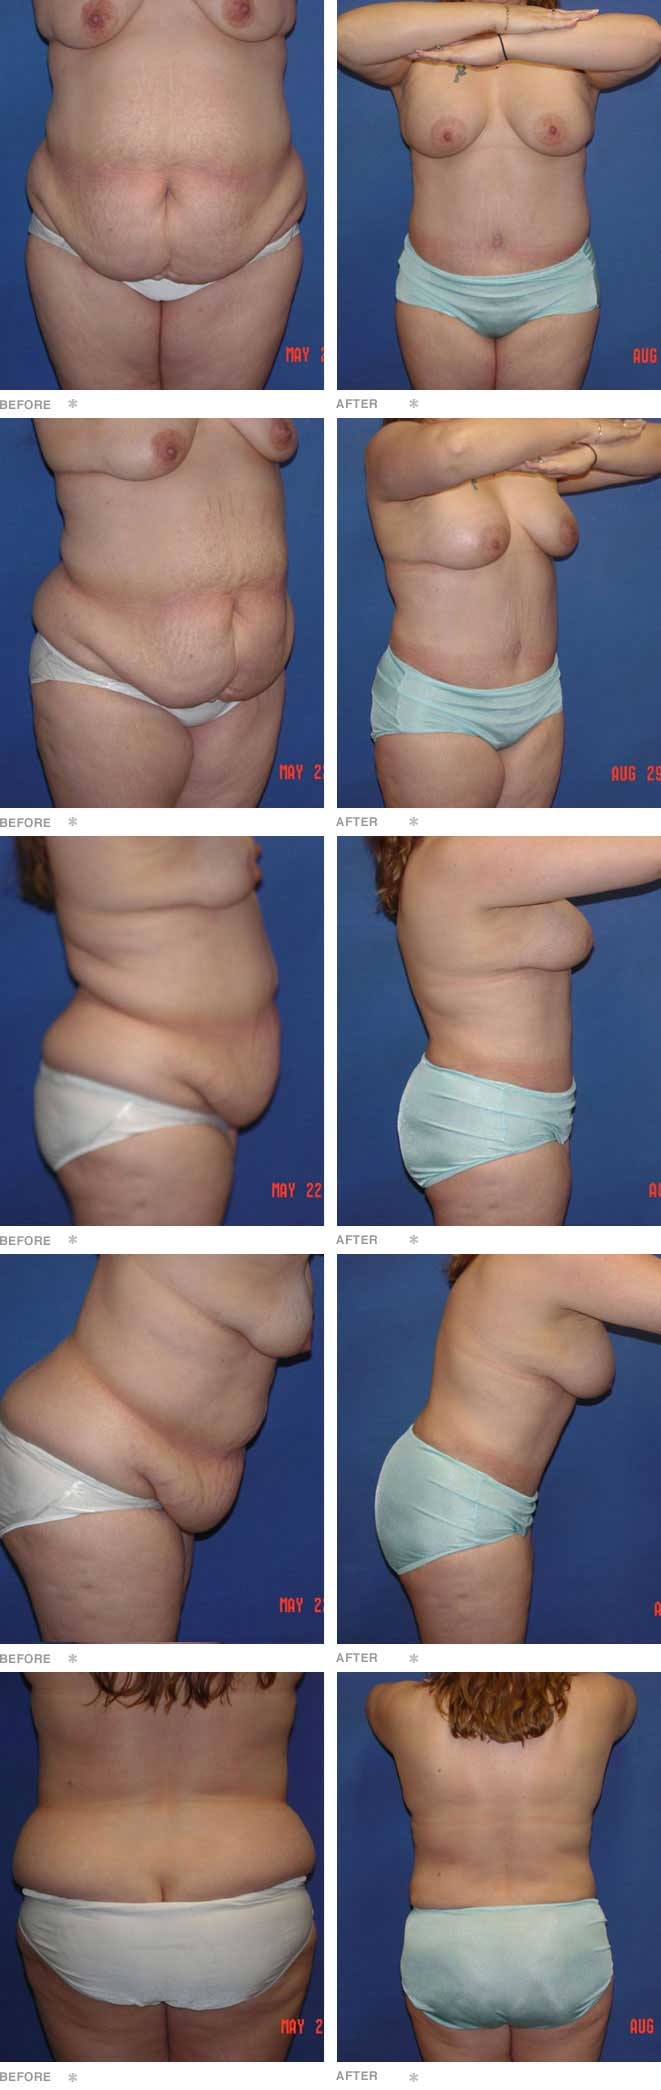 Abdominoplasty with Liposuction and Breast Augmentation